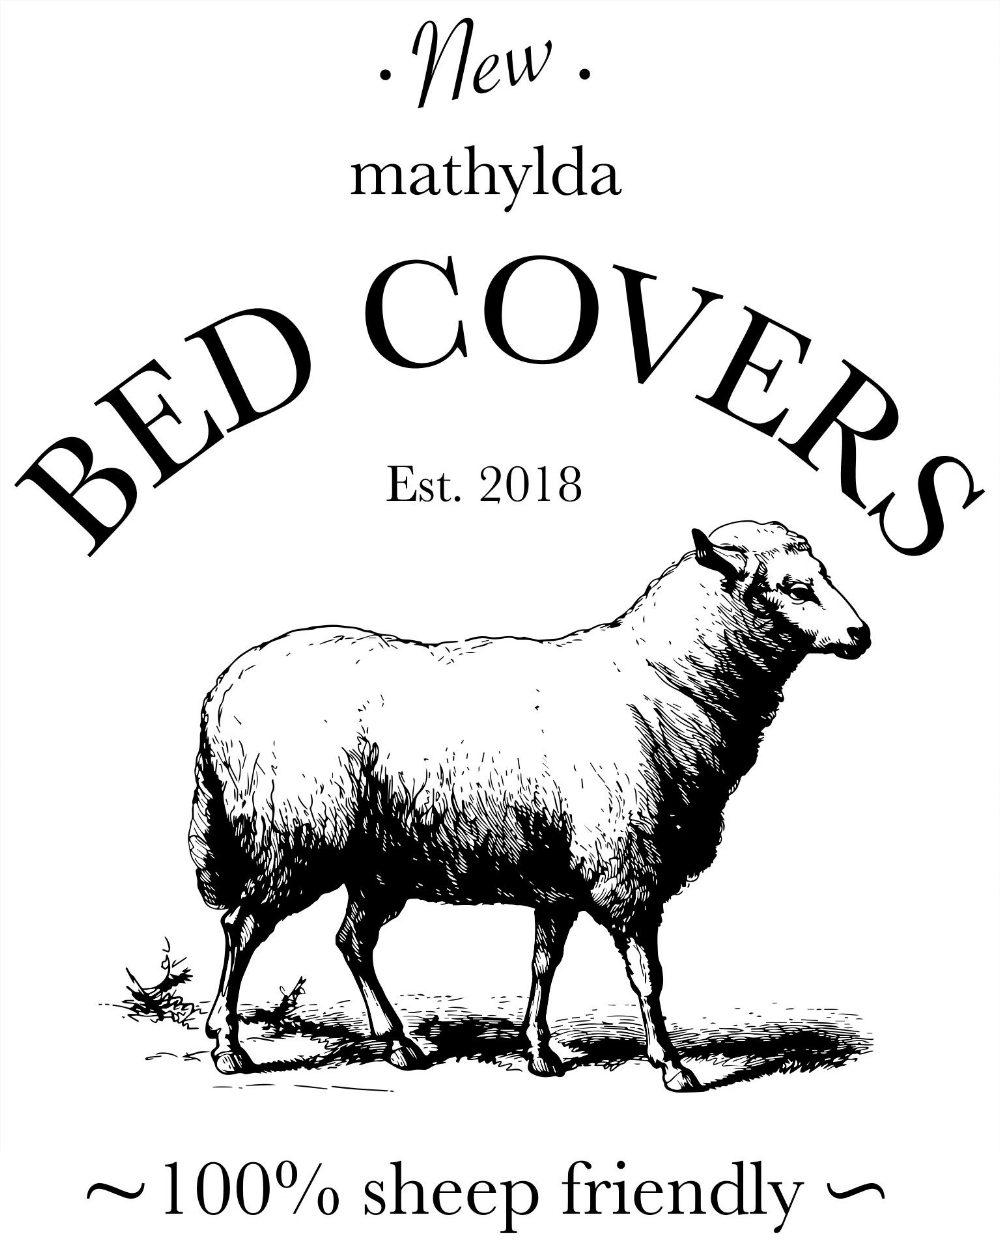 Sheep_bedcovers_small.jpg